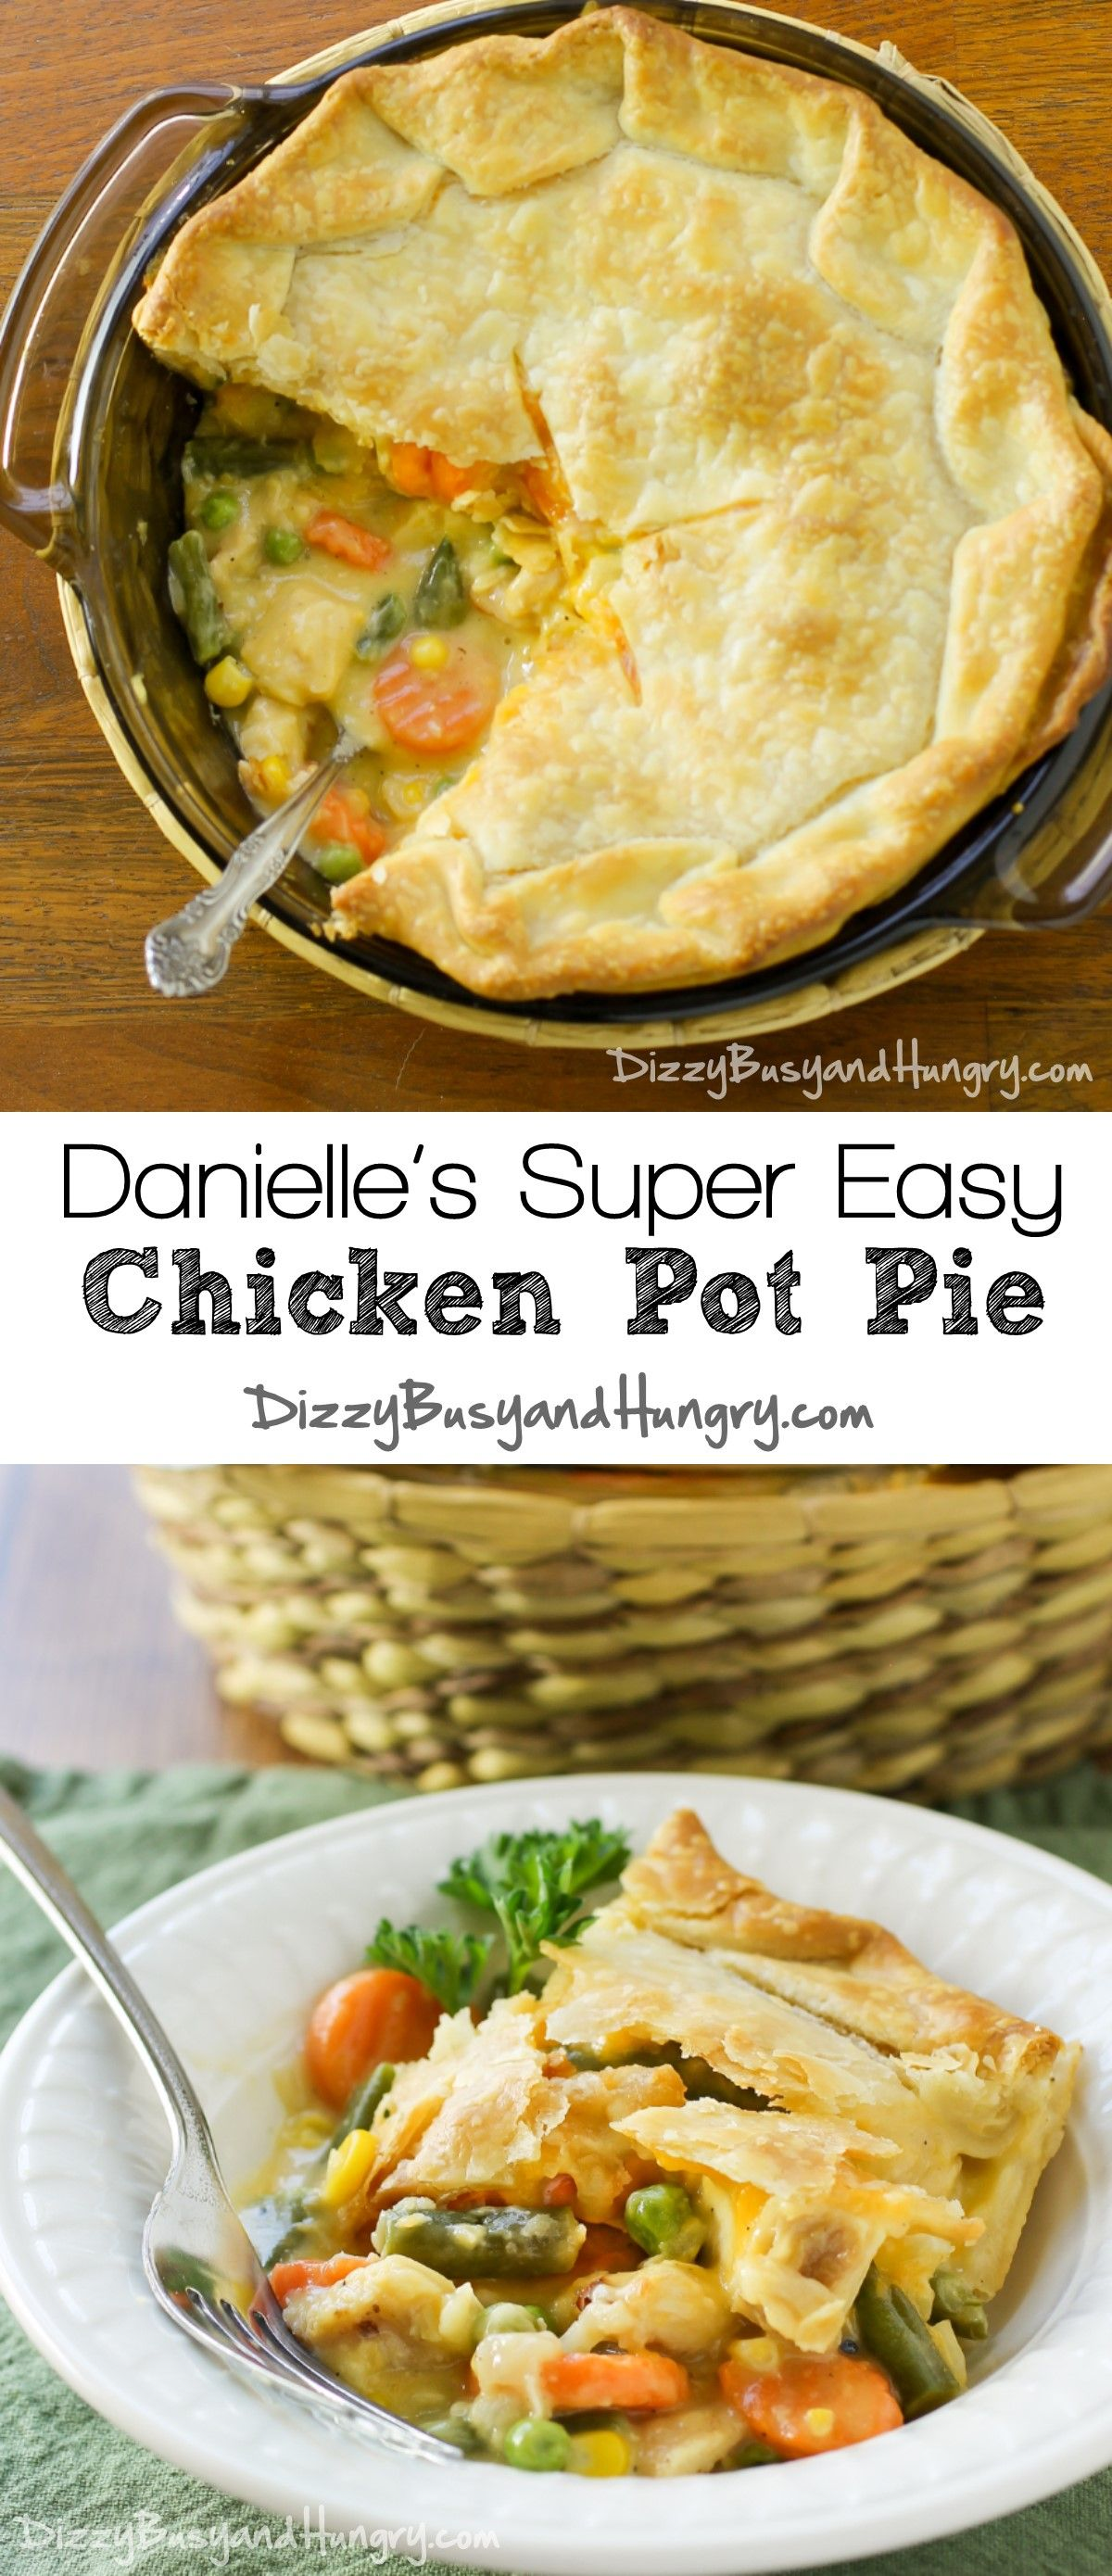 Danielles super easy chicken pot pie recipe delicious food danielles super easy chicken pot pie dizzybusyandhungry this creamy delicious family meal is quick and easy and the kids love it forumfinder